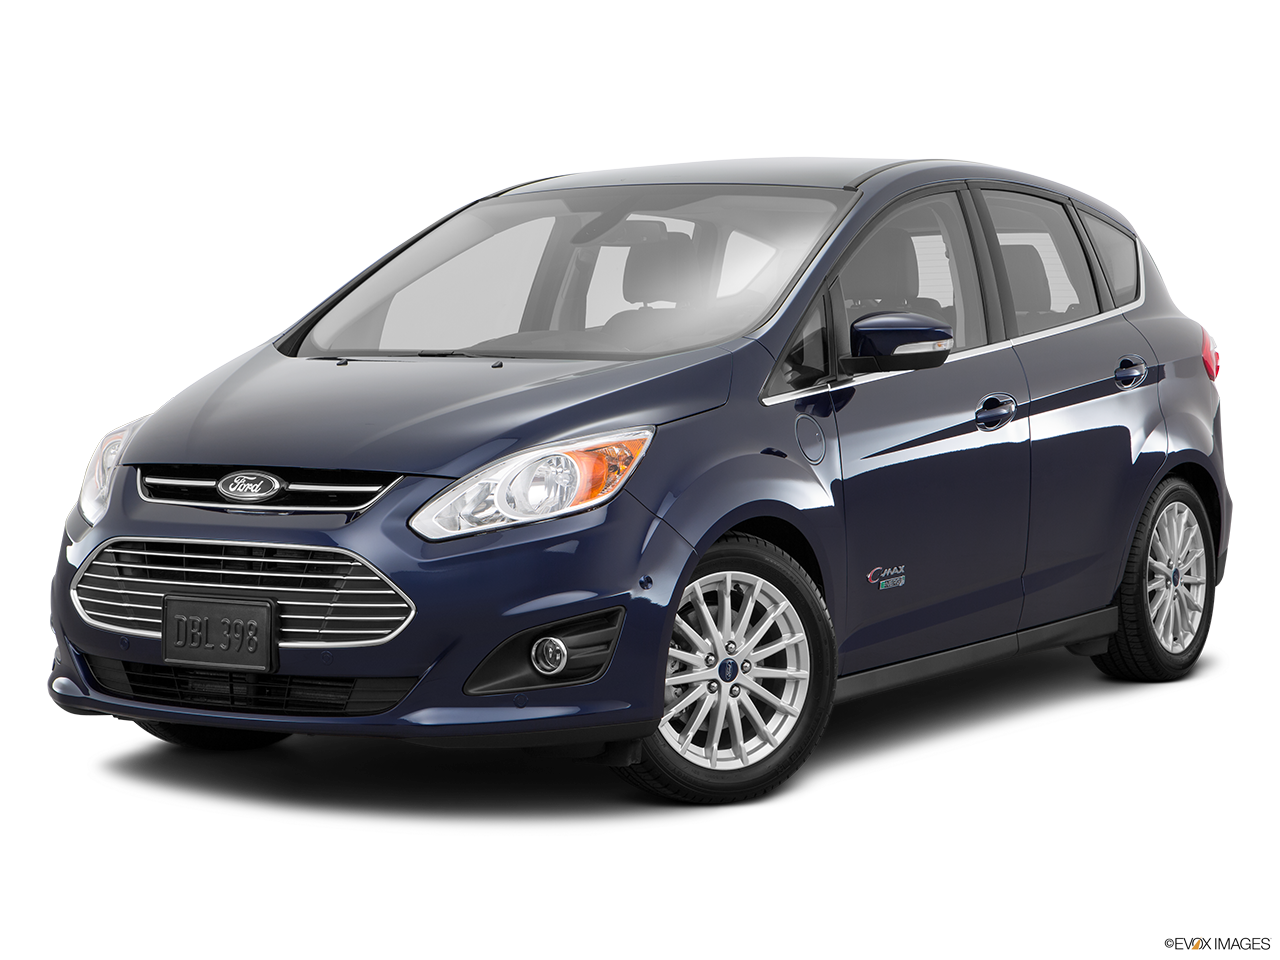 2016 ford c max dealer serving mesquite all star ford canton. Black Bedroom Furniture Sets. Home Design Ideas